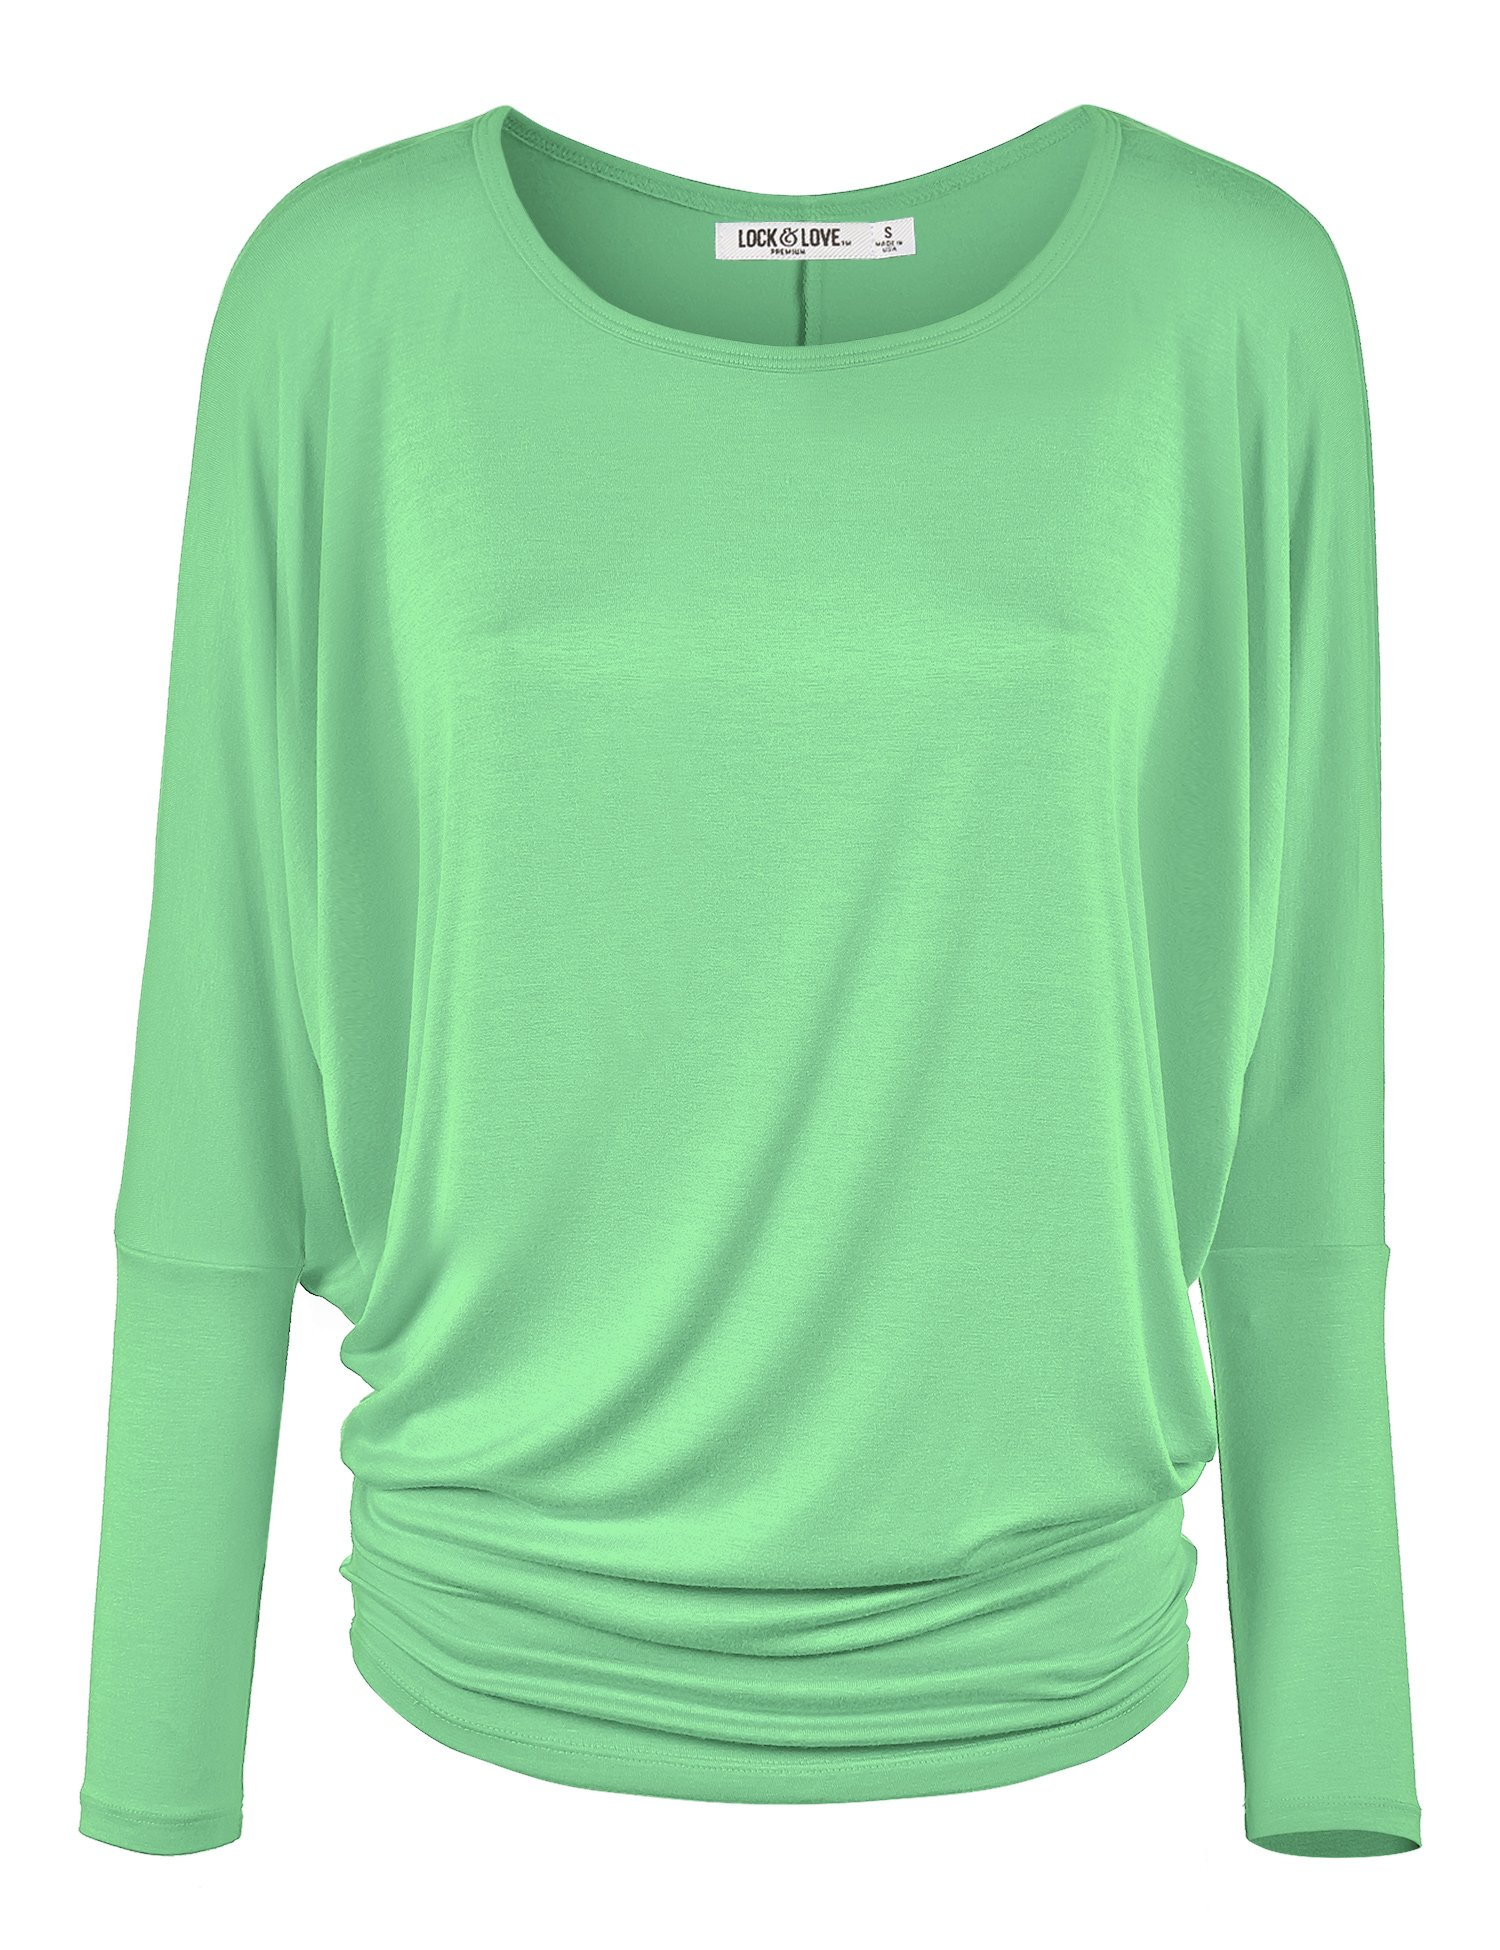 Lock and Love WT826 Womens Batwing Long Sleeve Top M Mint